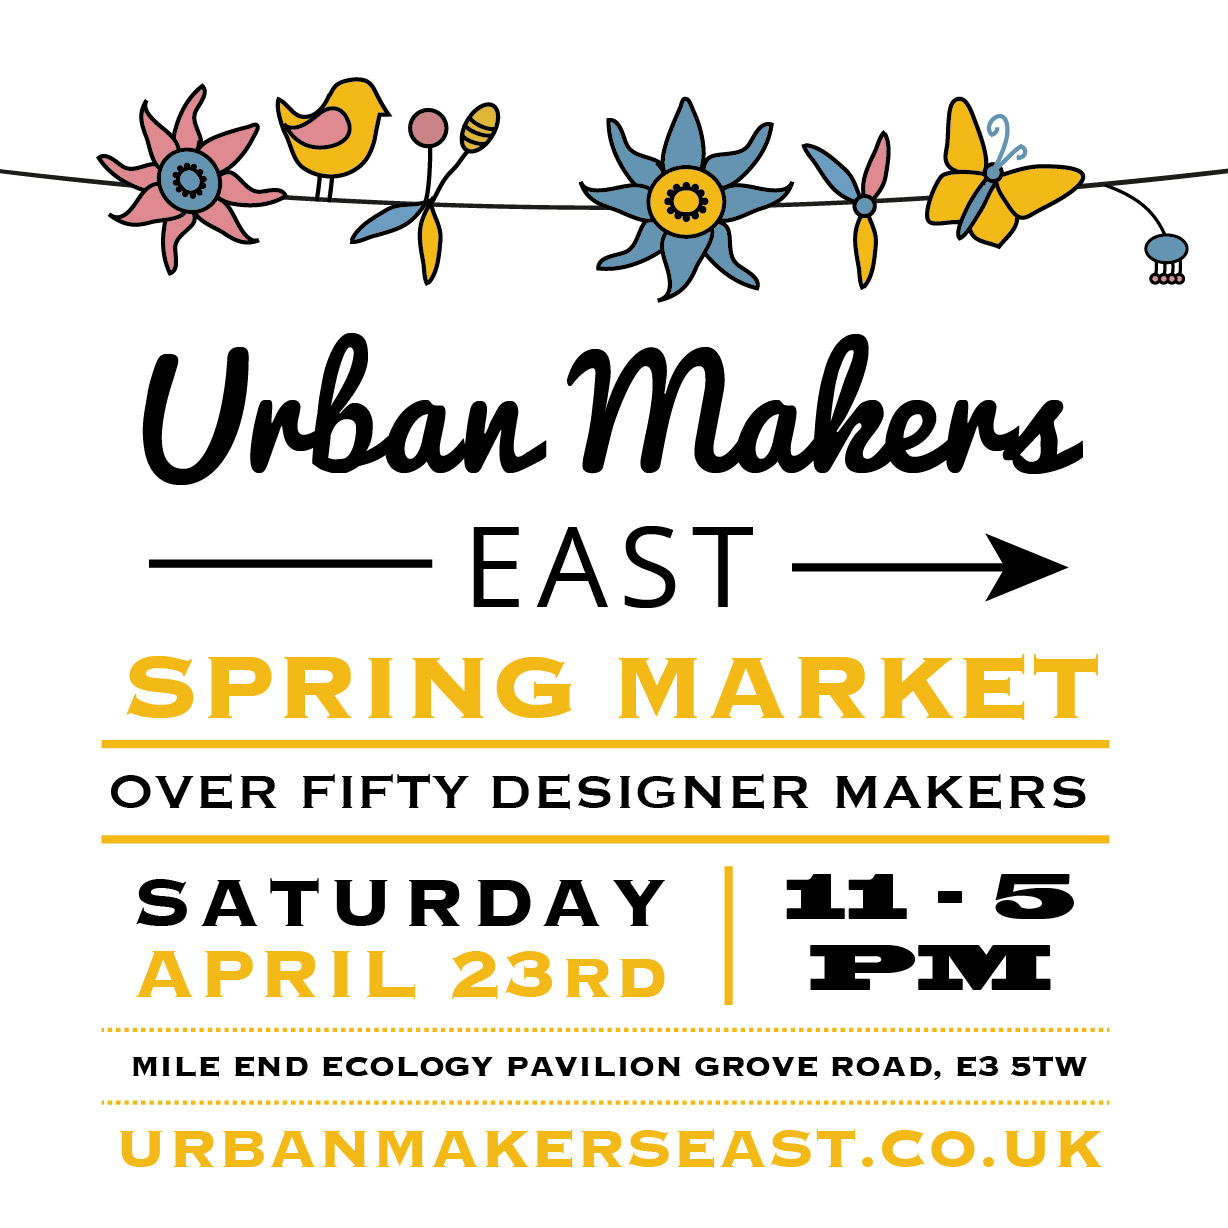 Urban Makers East Spring Market